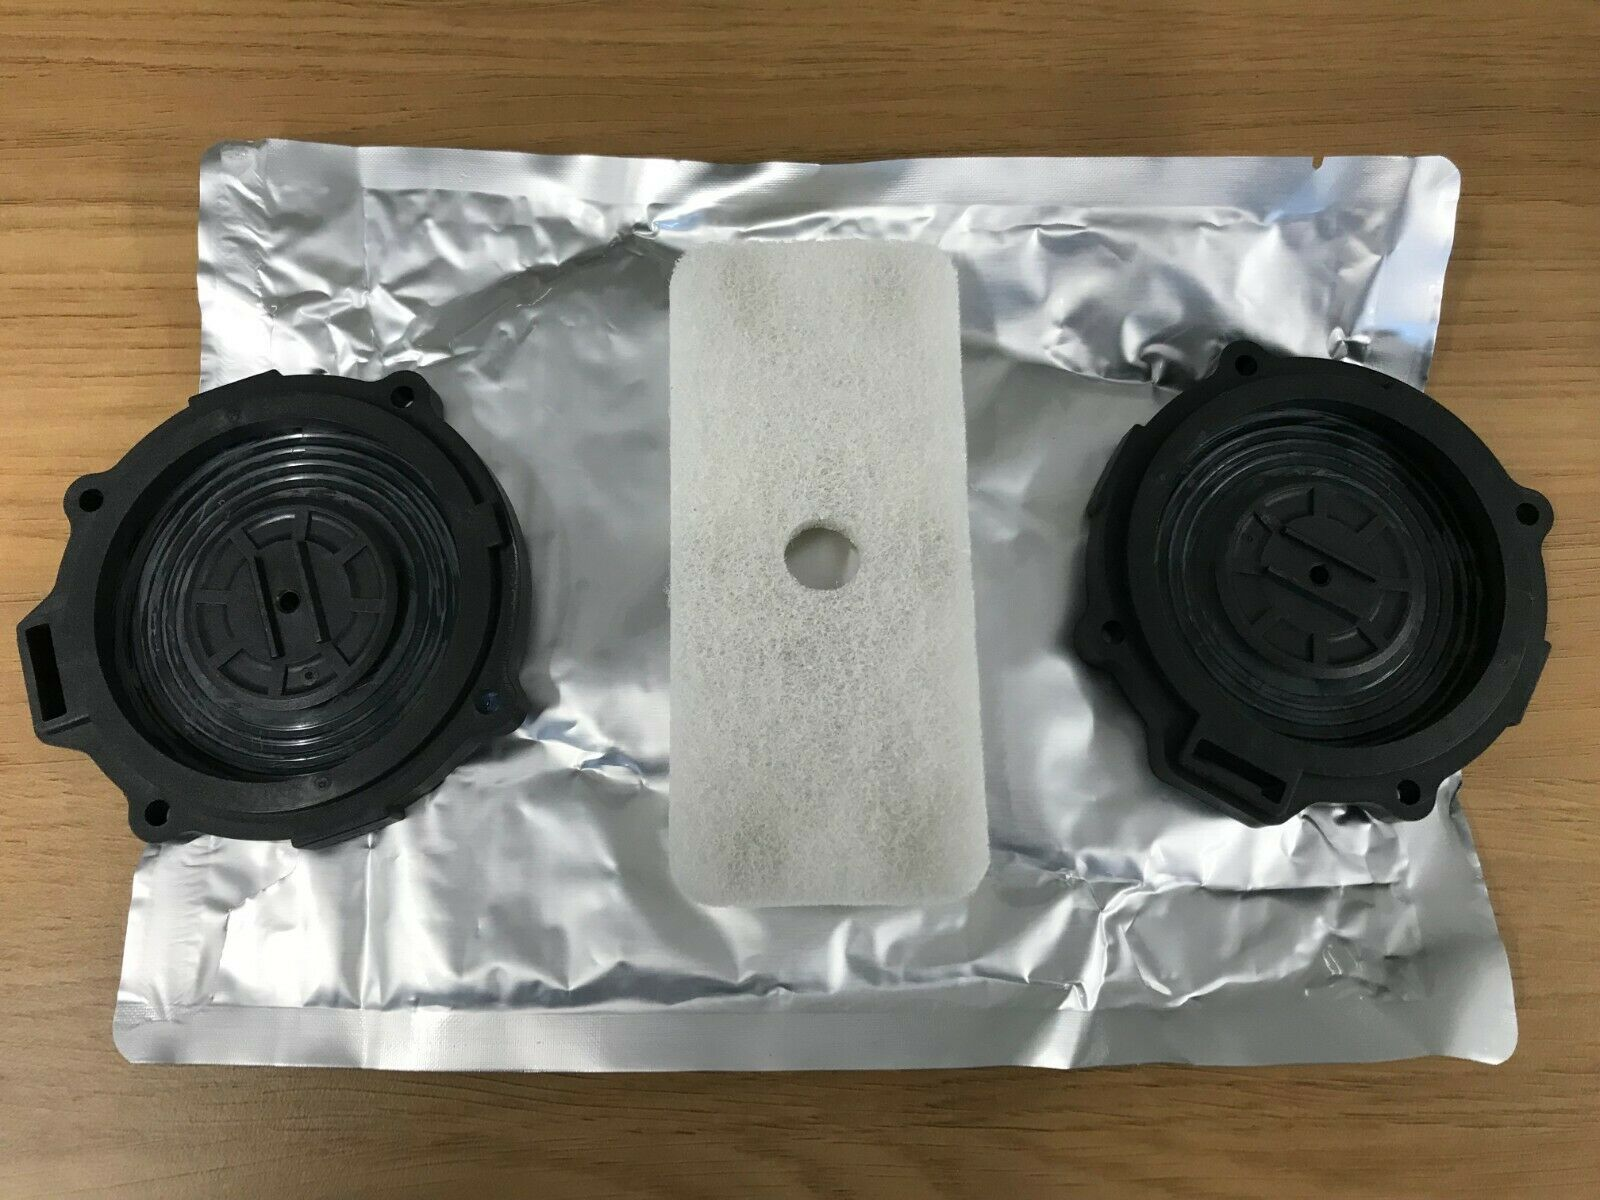 Secoh Diaphragms and Filter for JDK 60 80 100 120 Air pump for Pond/Sewage Pumps